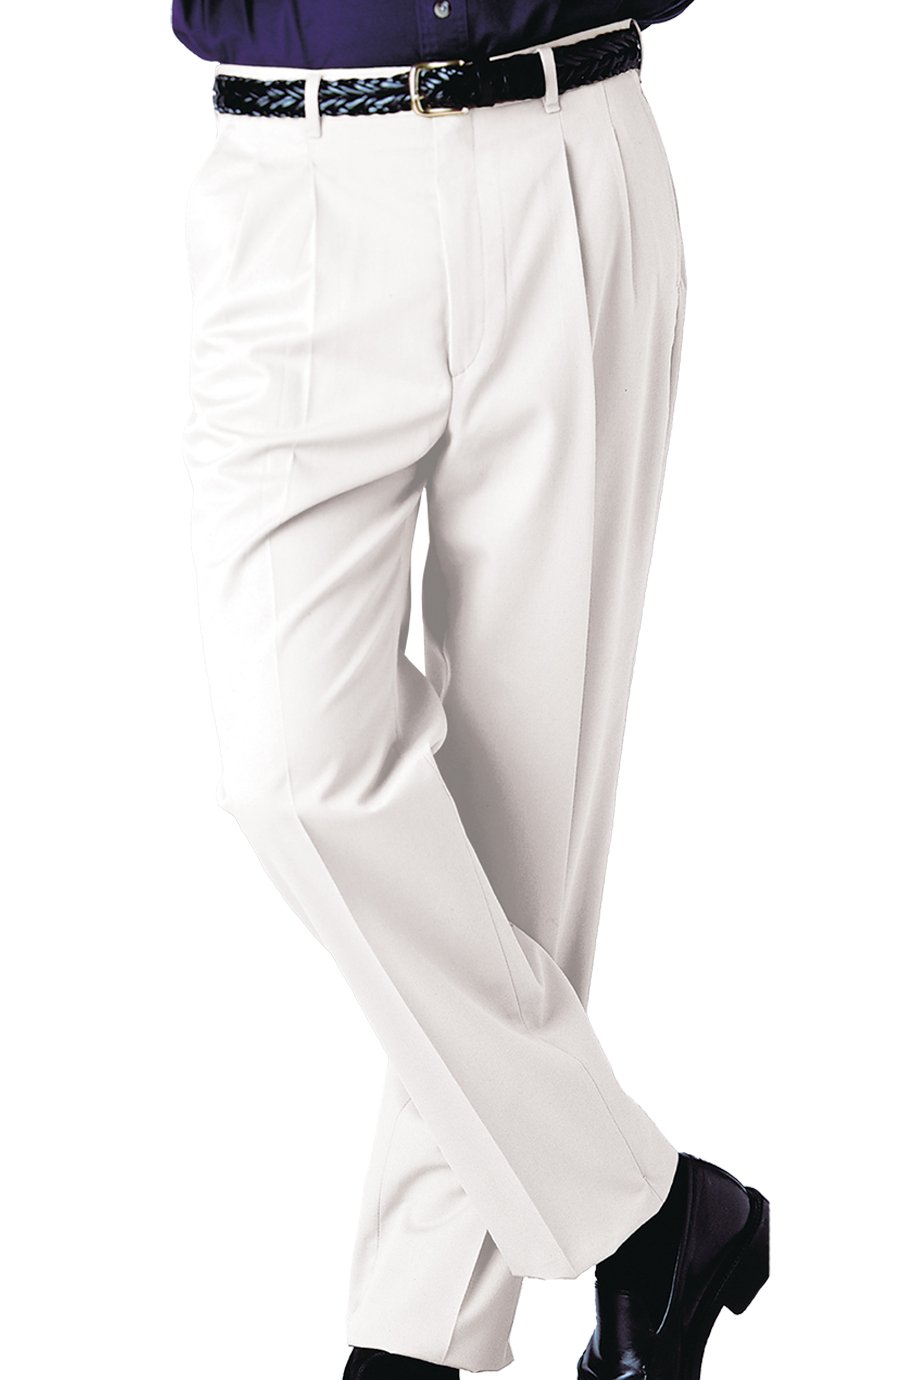 Ed Garments Men's 2610 Dress Pants (White 32 32) by Edwards Garment